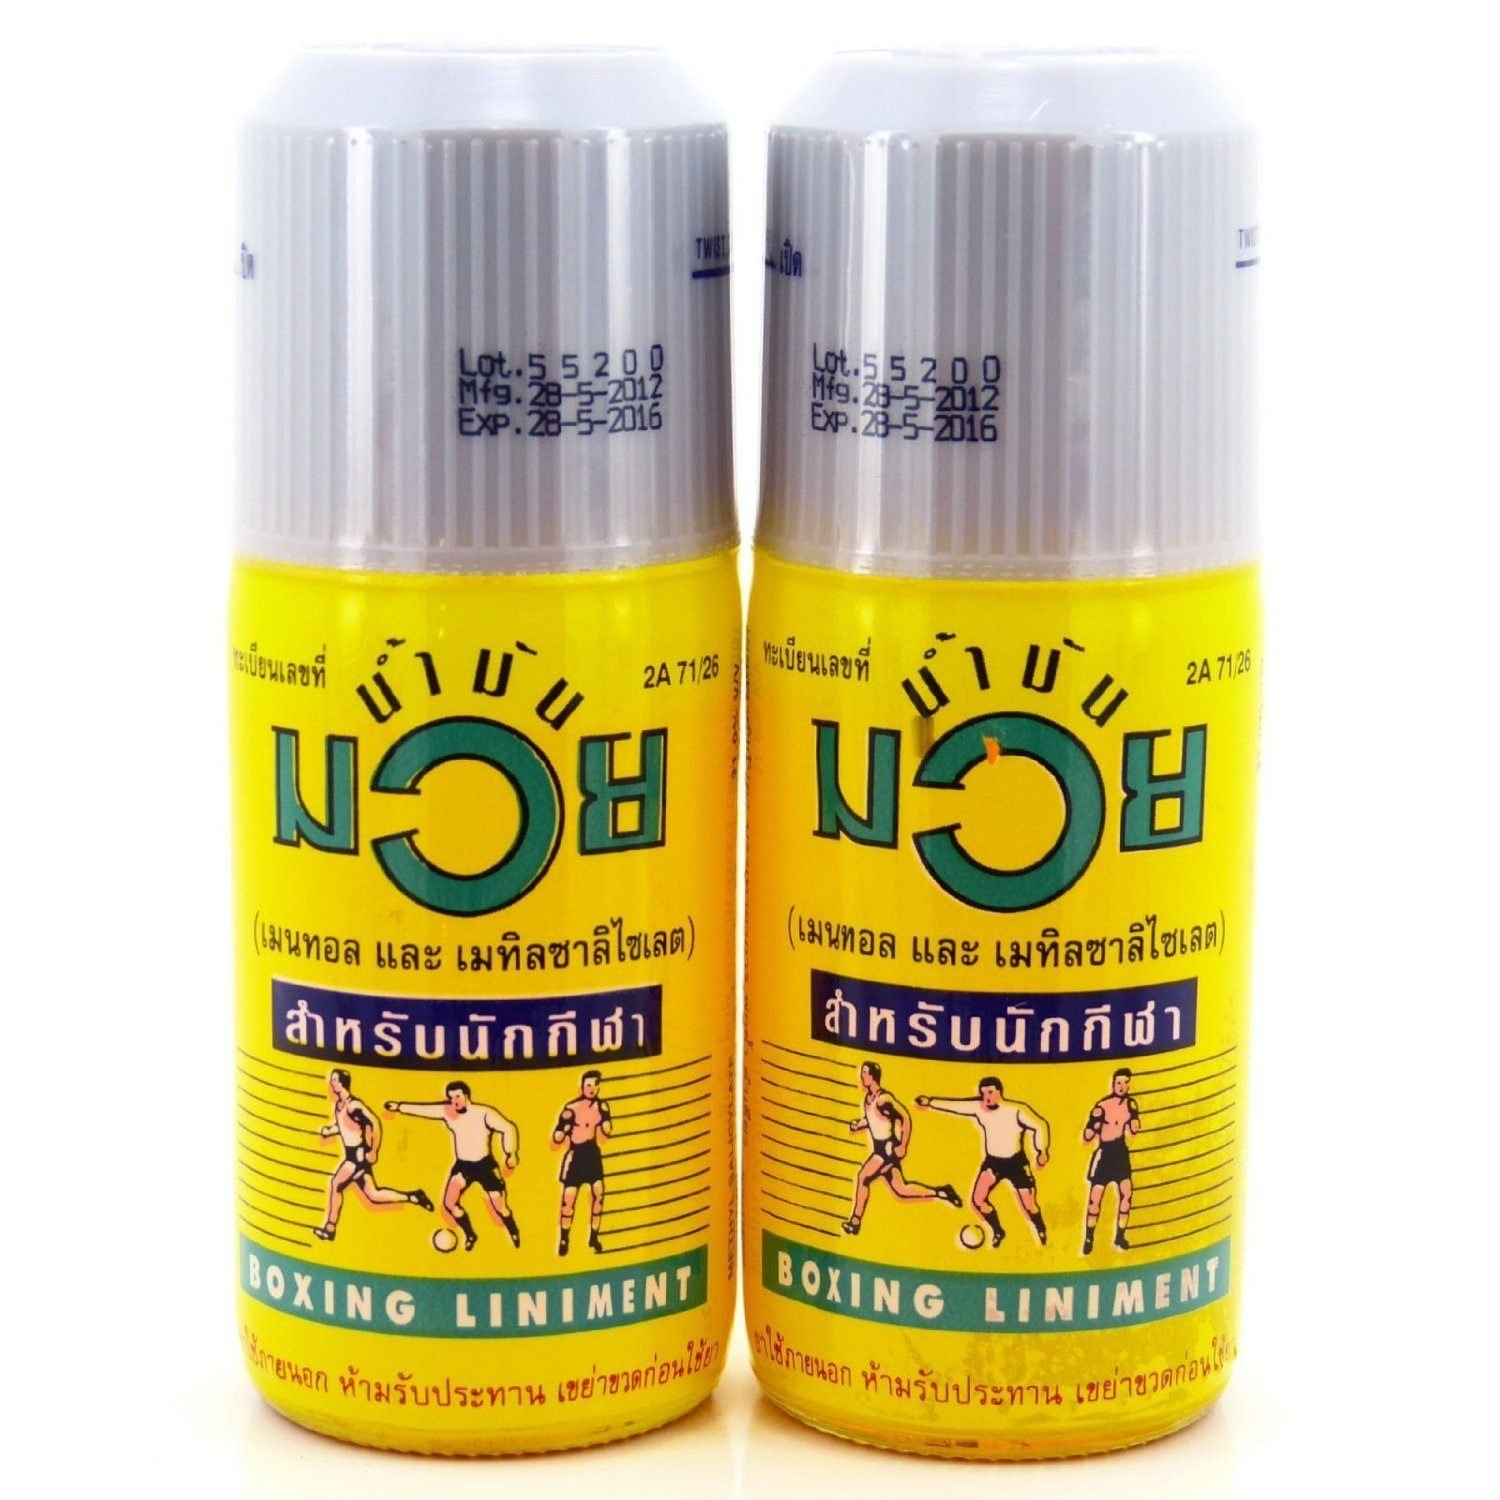 Namman Muay Thai Boxing Liniment 120ml. (2 Bottles) Thailand